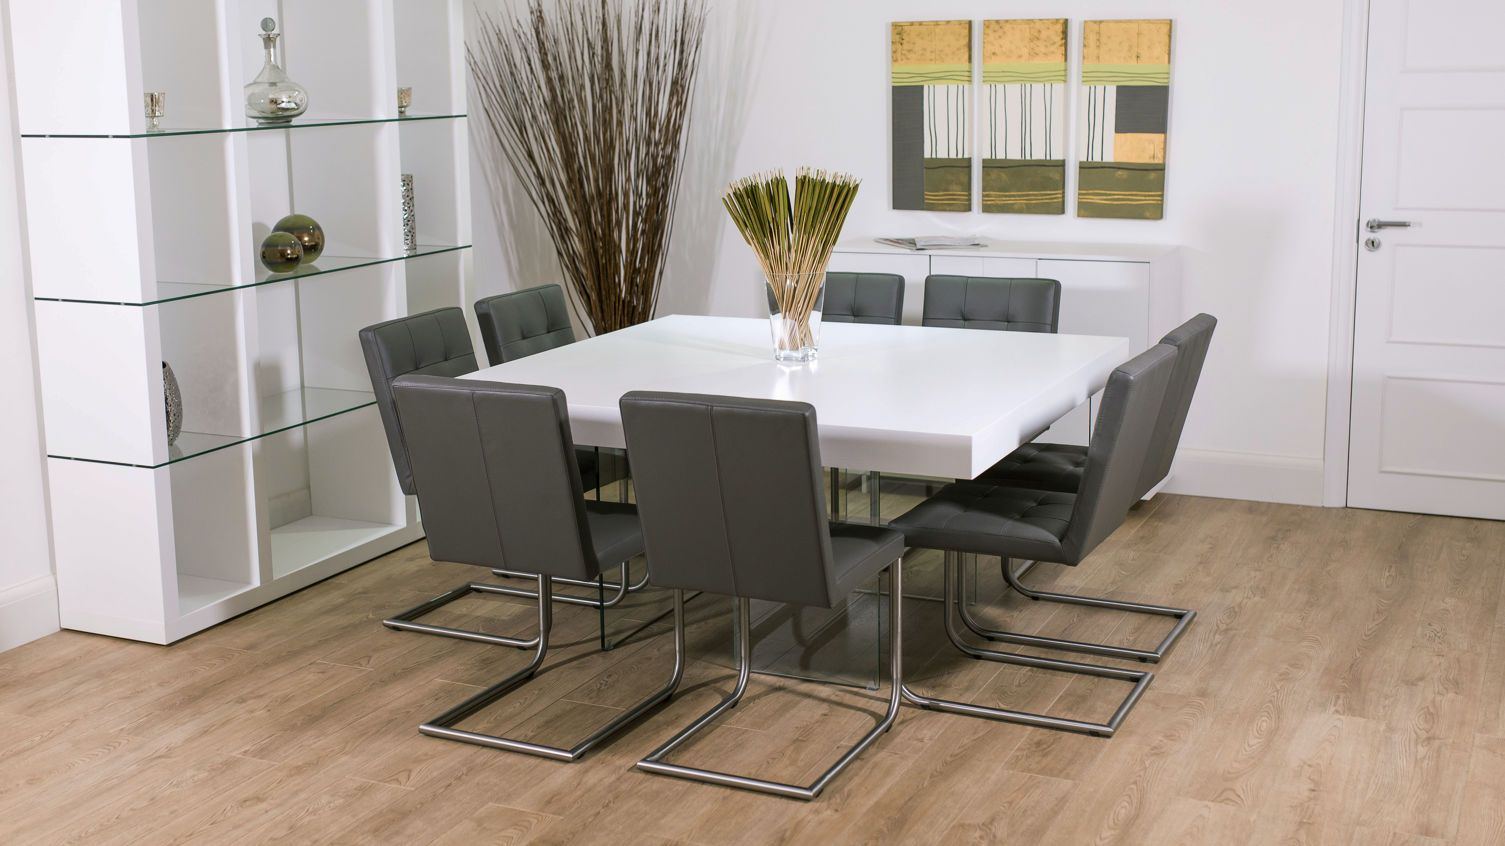 8 Seater Square Glass Dining Table Dining Table Marble Square